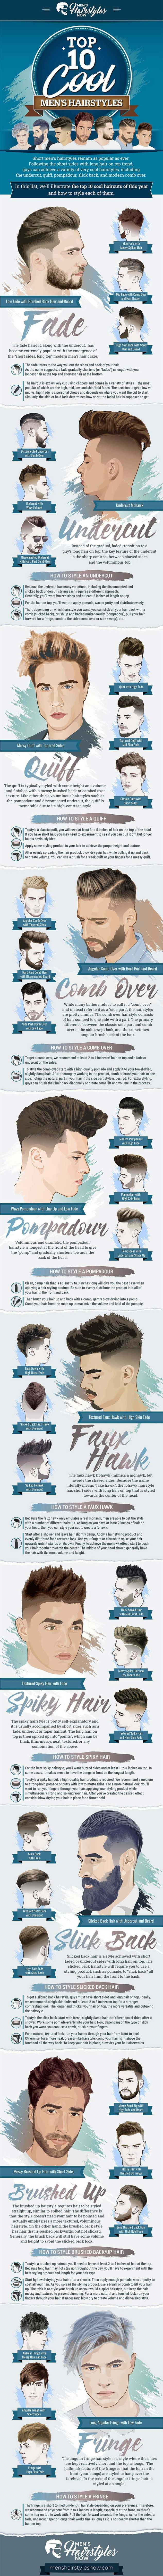 MHN - Cool Hairstyles For Men 2017